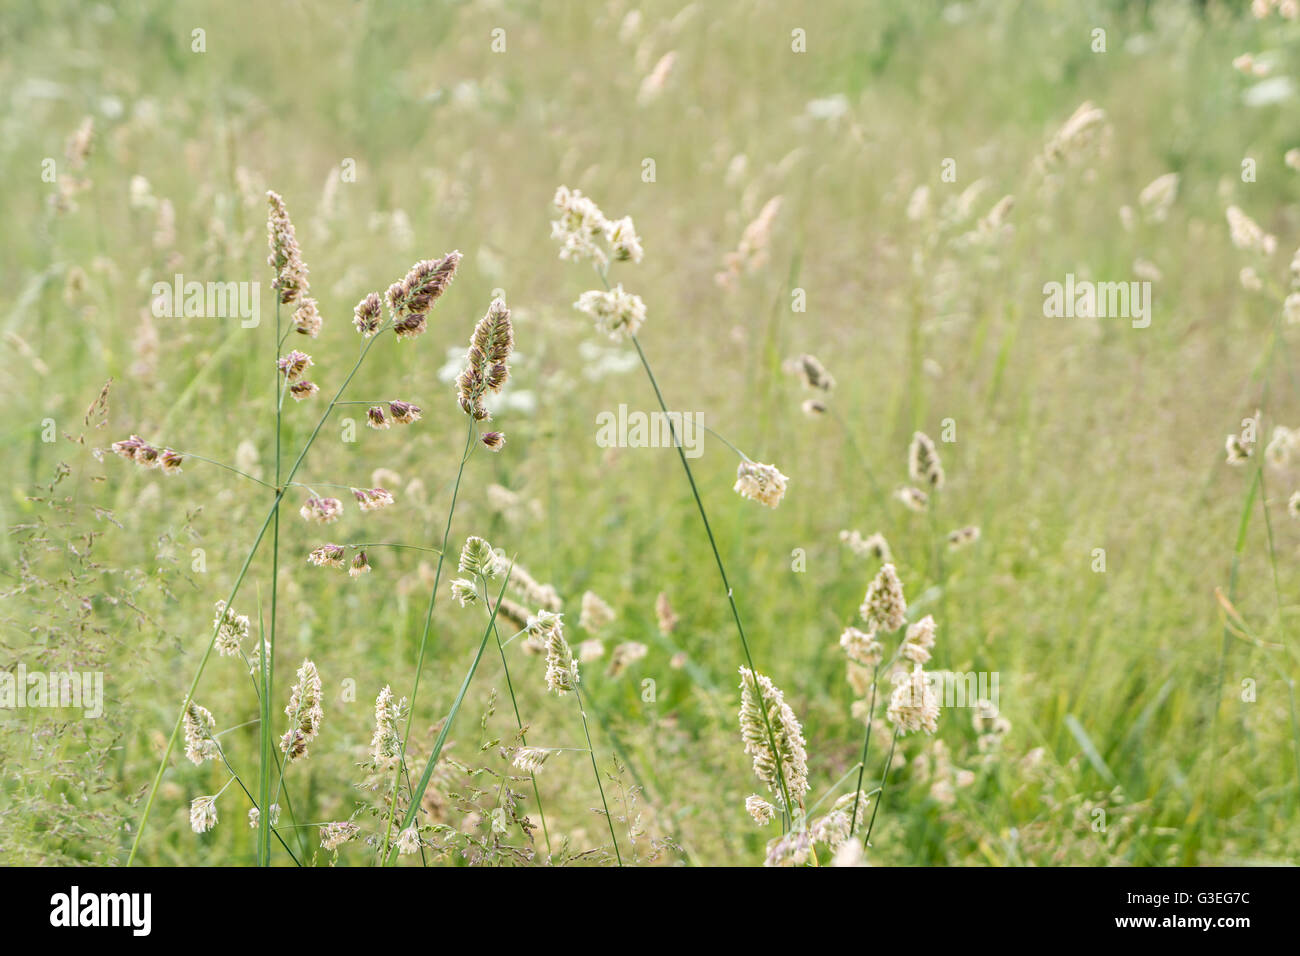 Hayfever Seaon - Stock Image